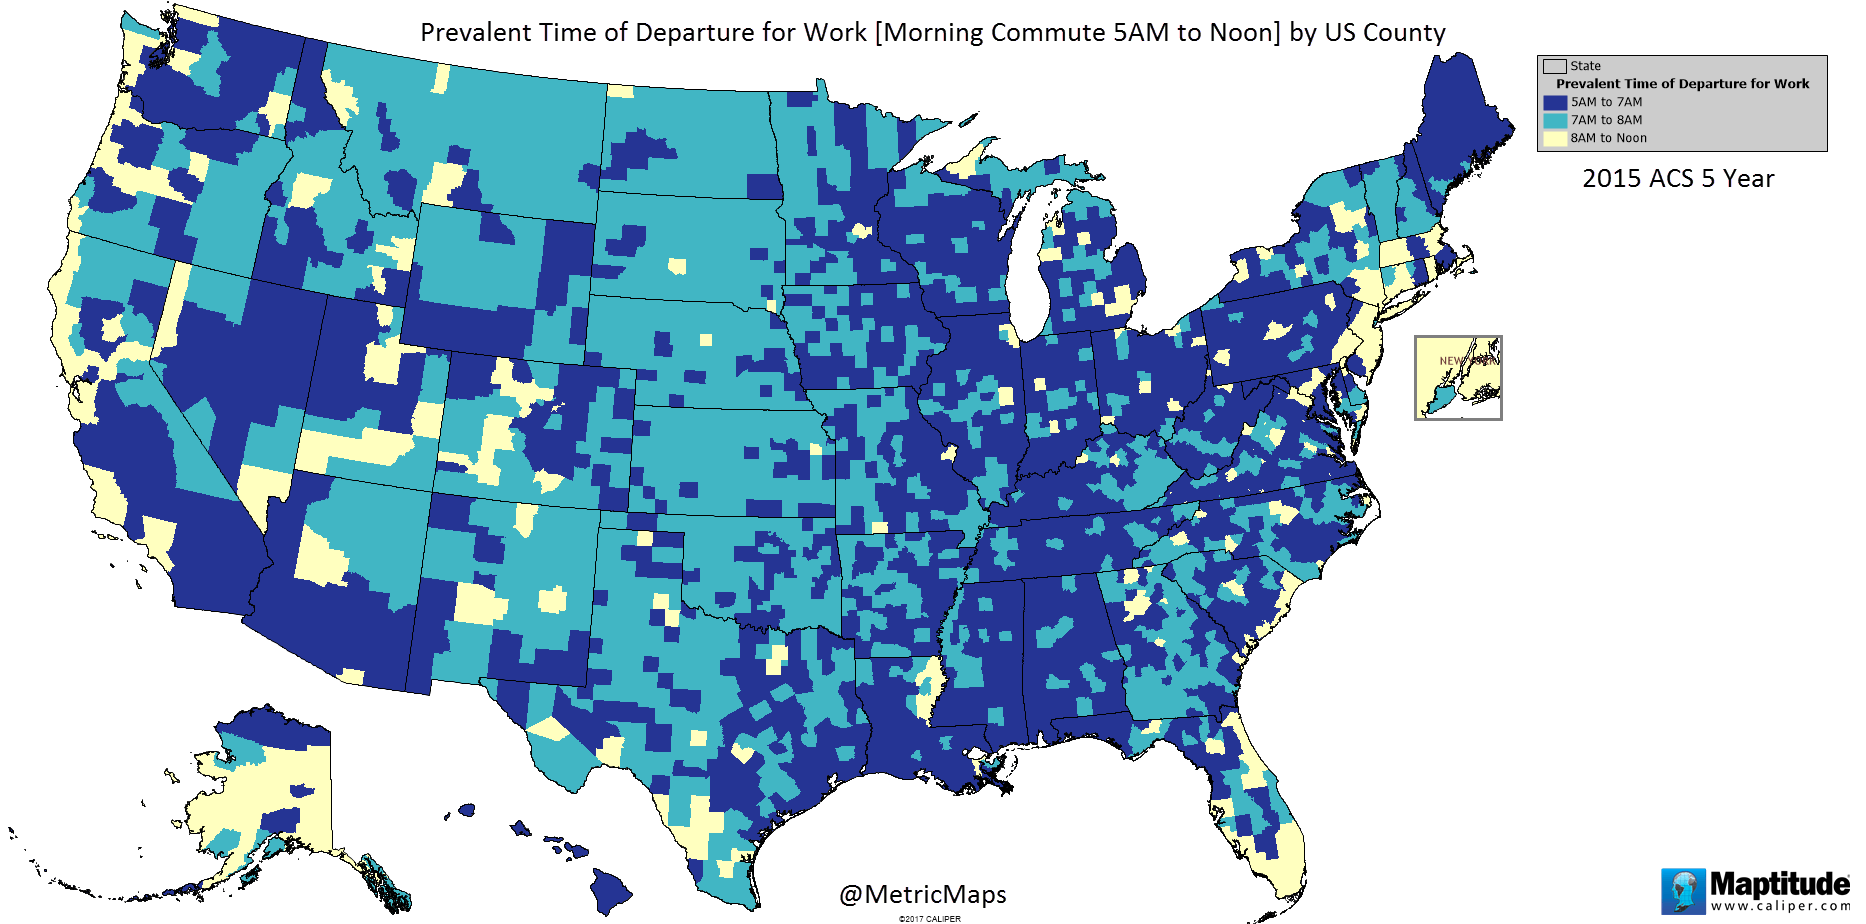 Prevalent time of departure for work by U.S. county